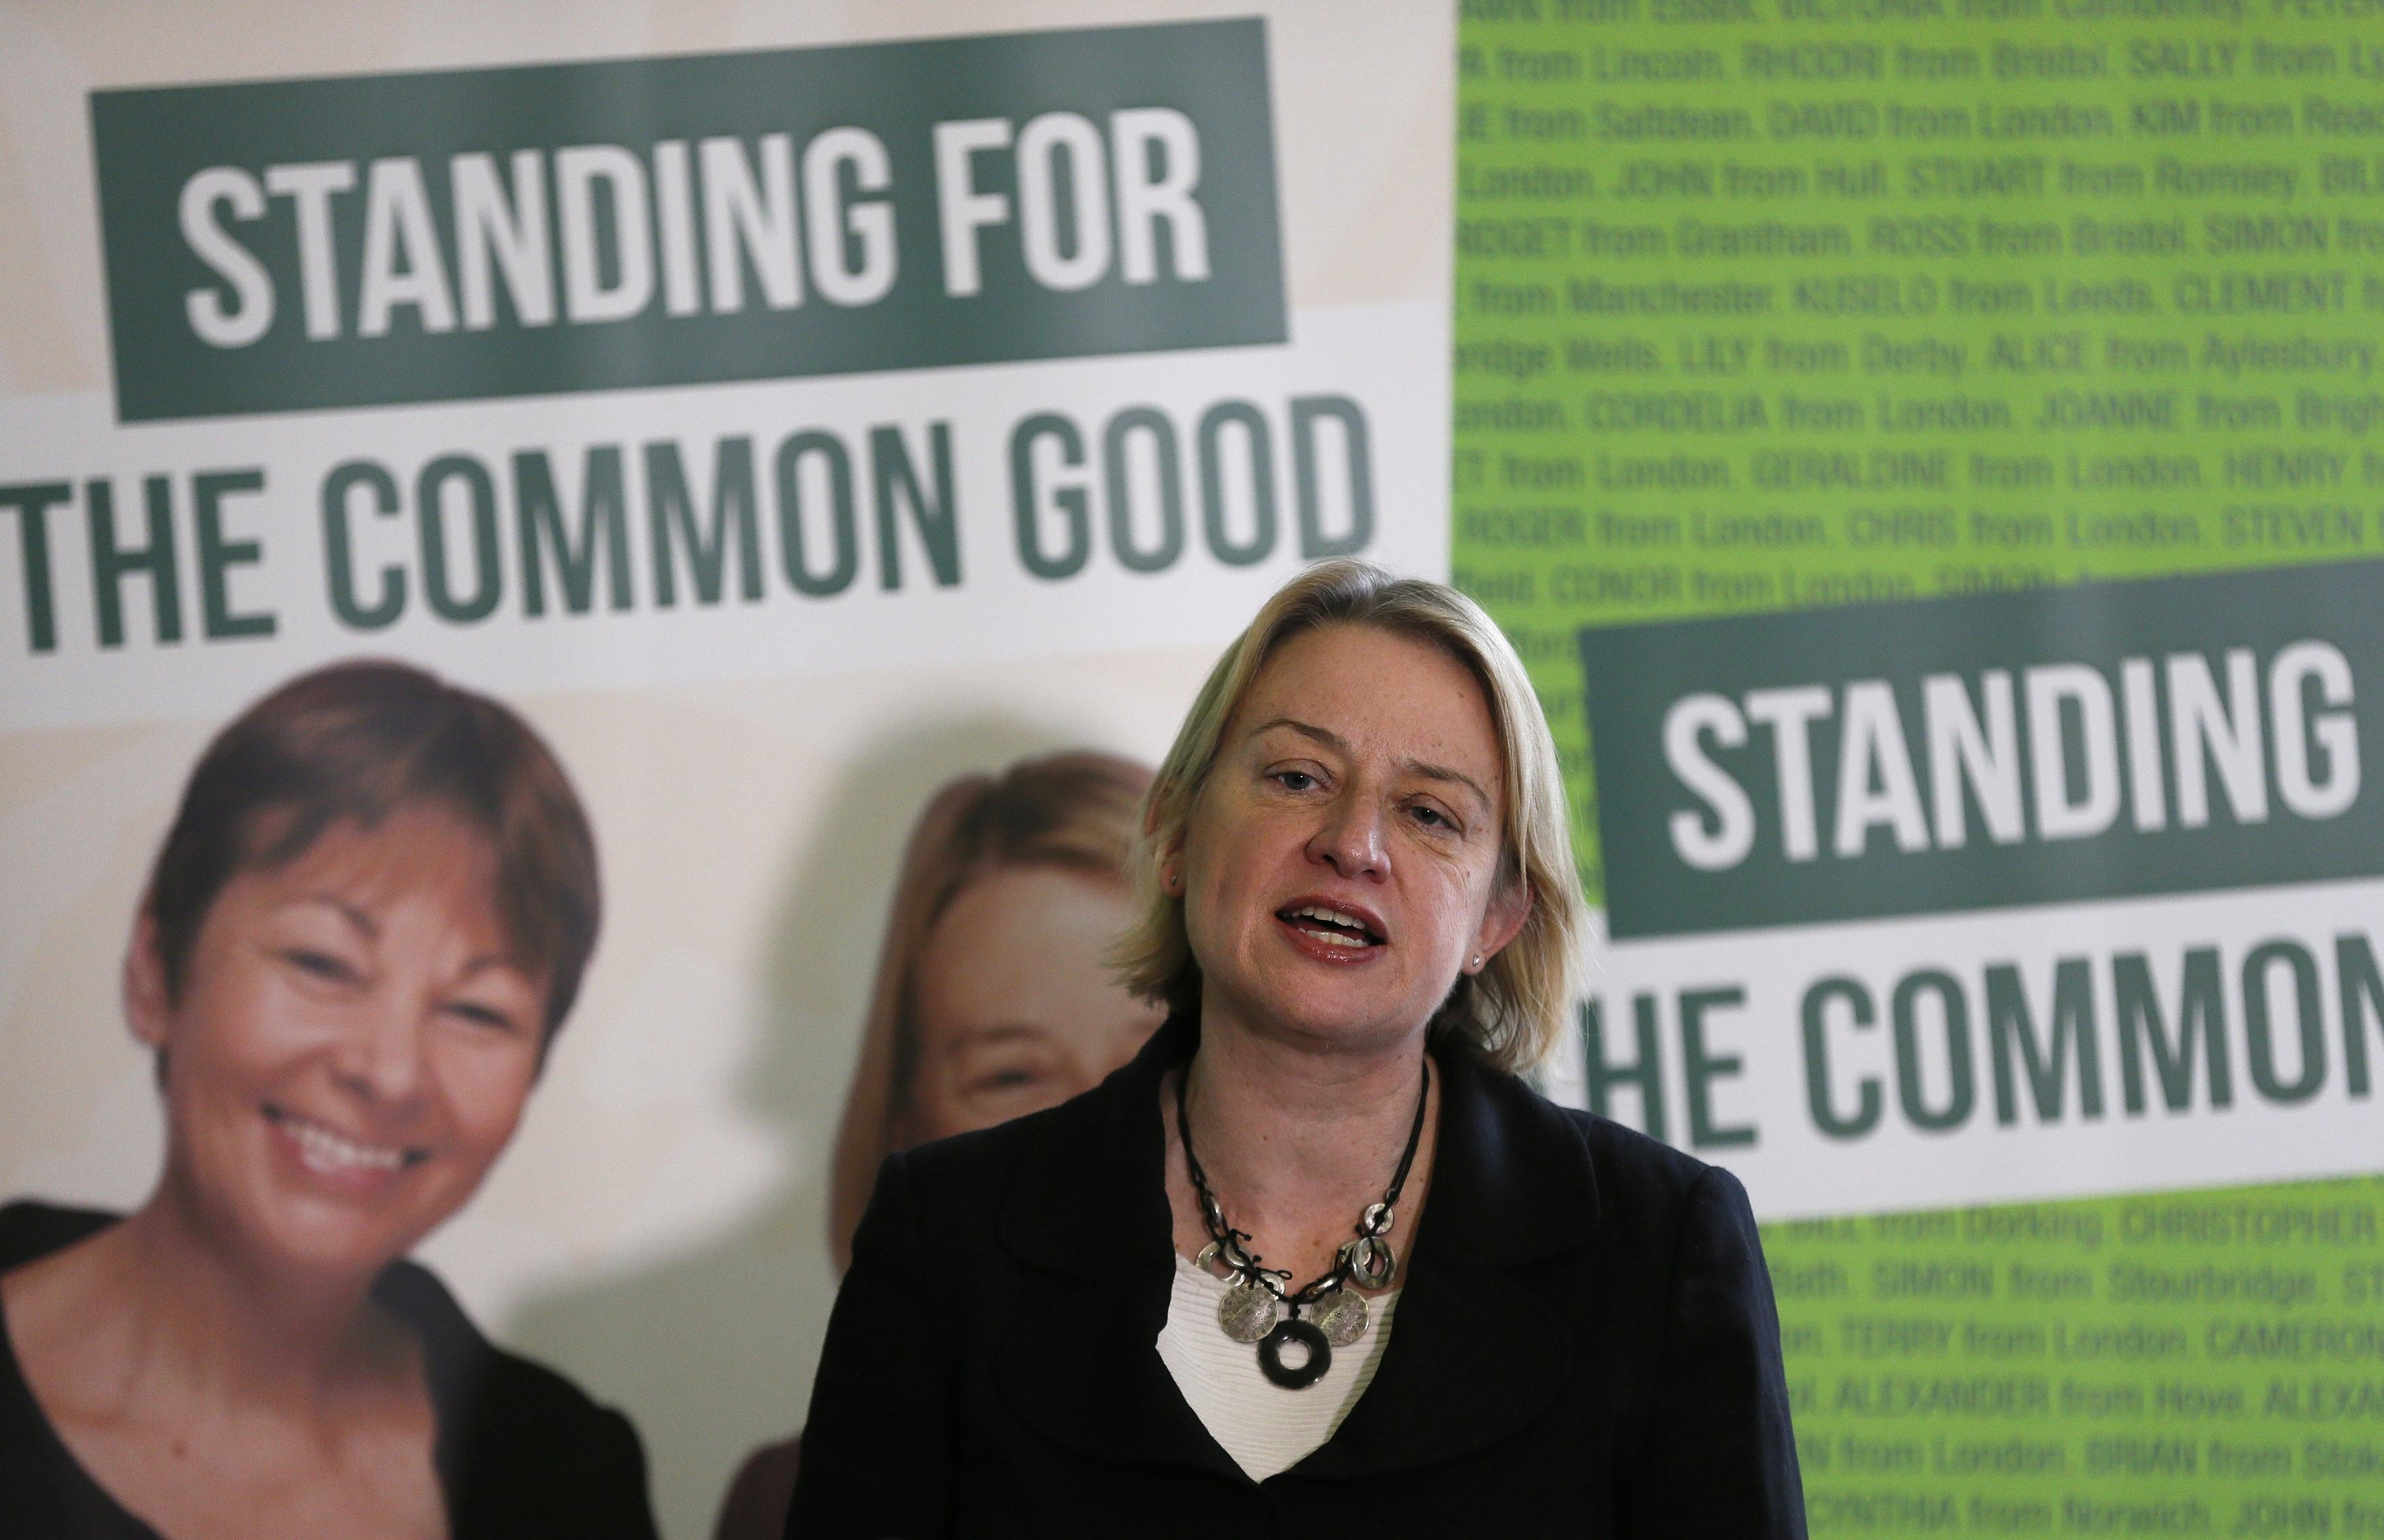 Britain's Green Party leader Natalie Bennett speaks during the party's general election campaign launch in London on Feb. 24, 2015.